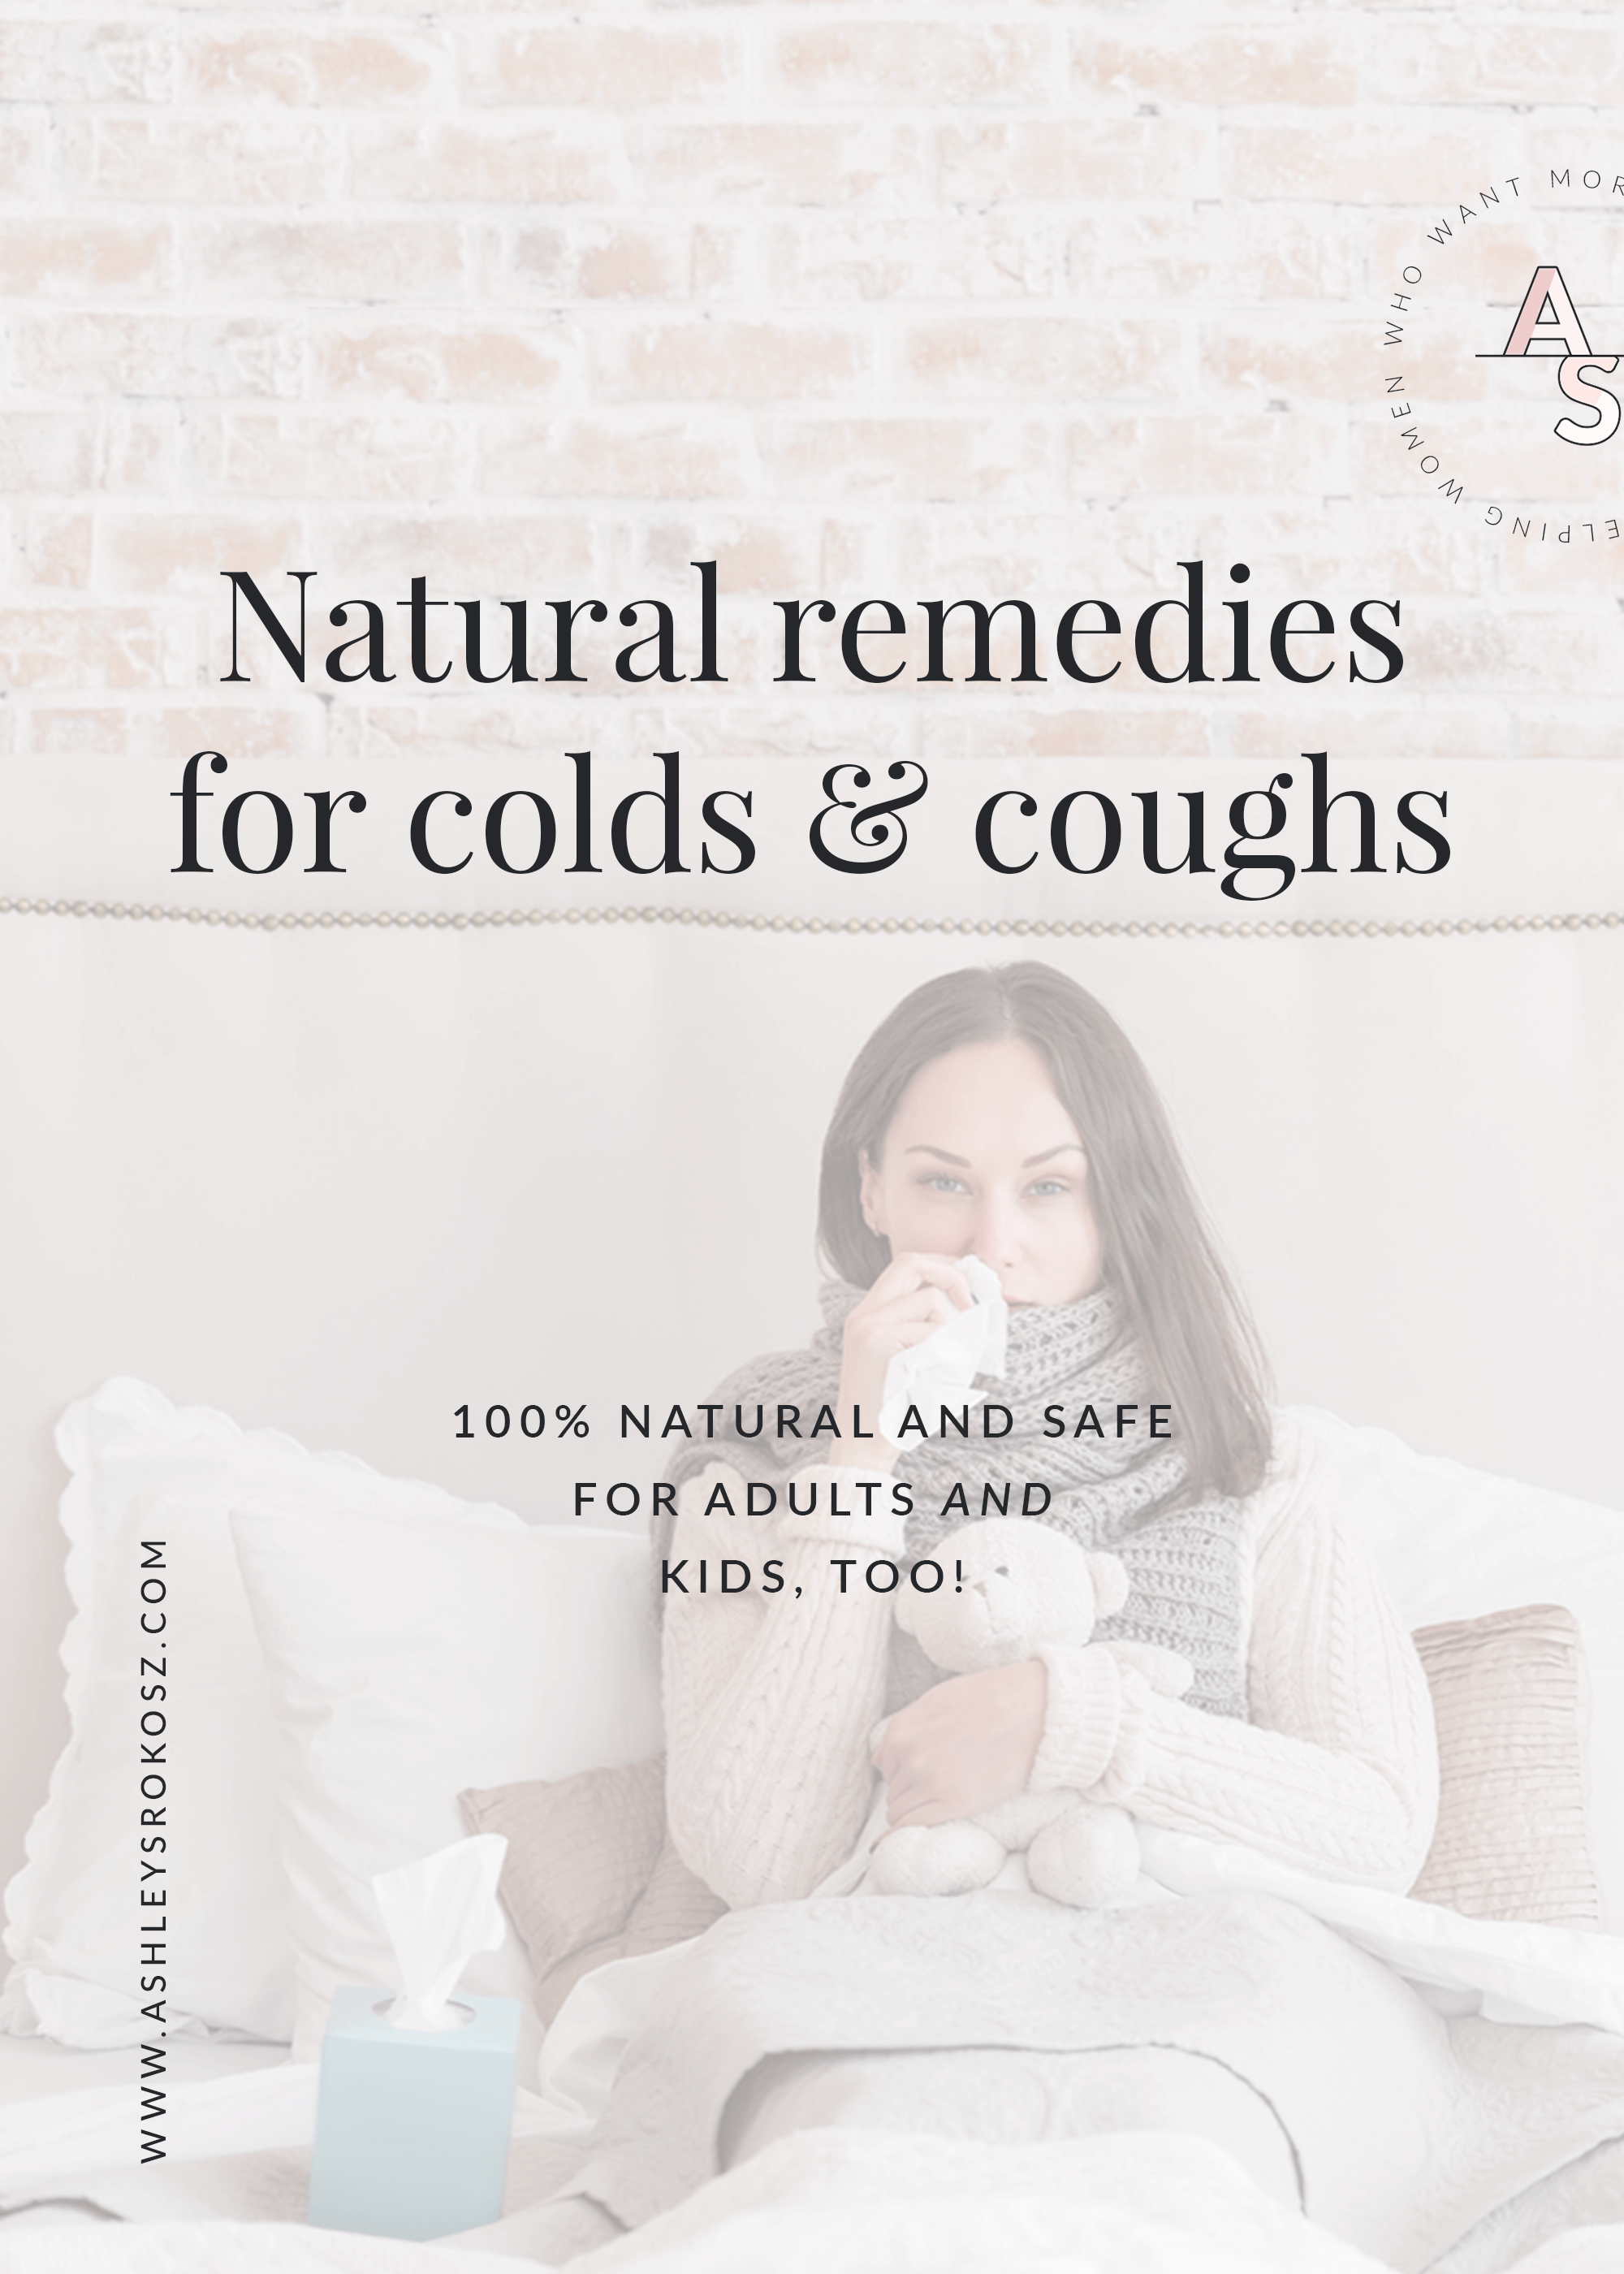 Is there anything worse than being sick when you have kids? Would you love to know how to get rid of colds and coughs faster? I'm sharing the 4 secret weapons to get you through cold and flu season naturally PLUS a recipe for the best natural cough syrup that actually works. #coldremedies #coughremedies #coughremediesforkids #coughessentialoils #getridofacoldfast